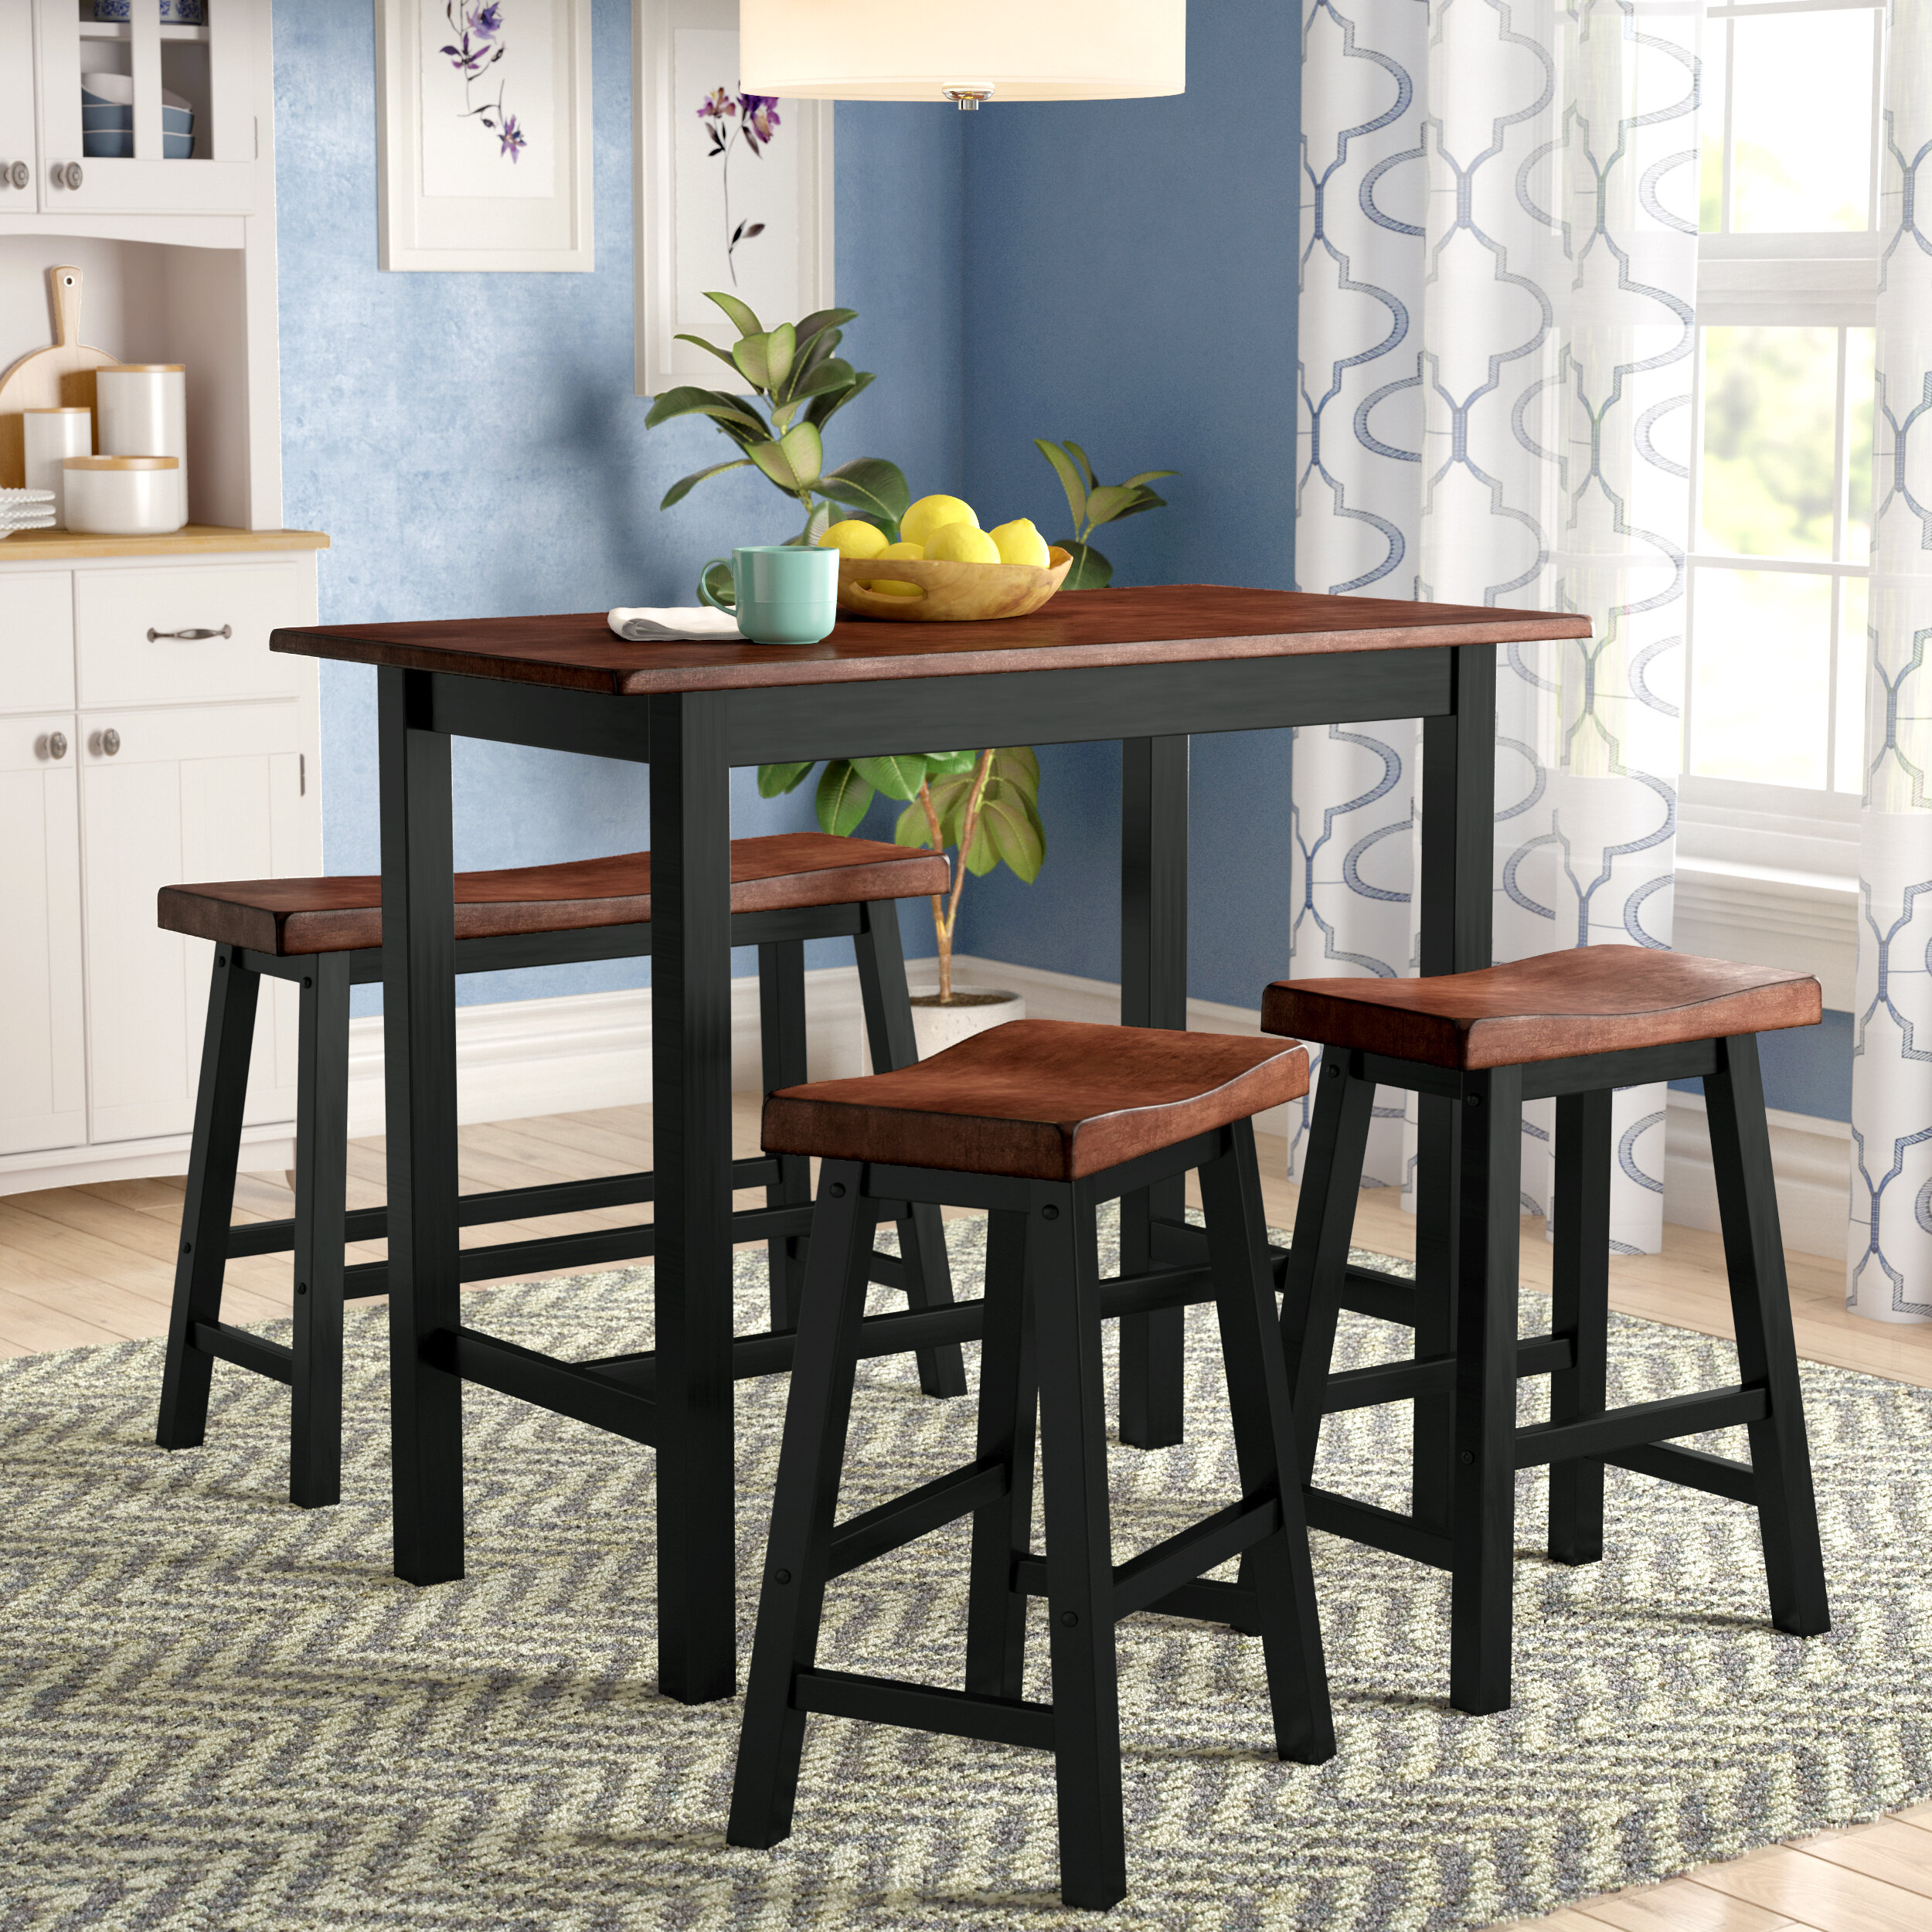 Winsted 4 Piece Counter Height Dining Set